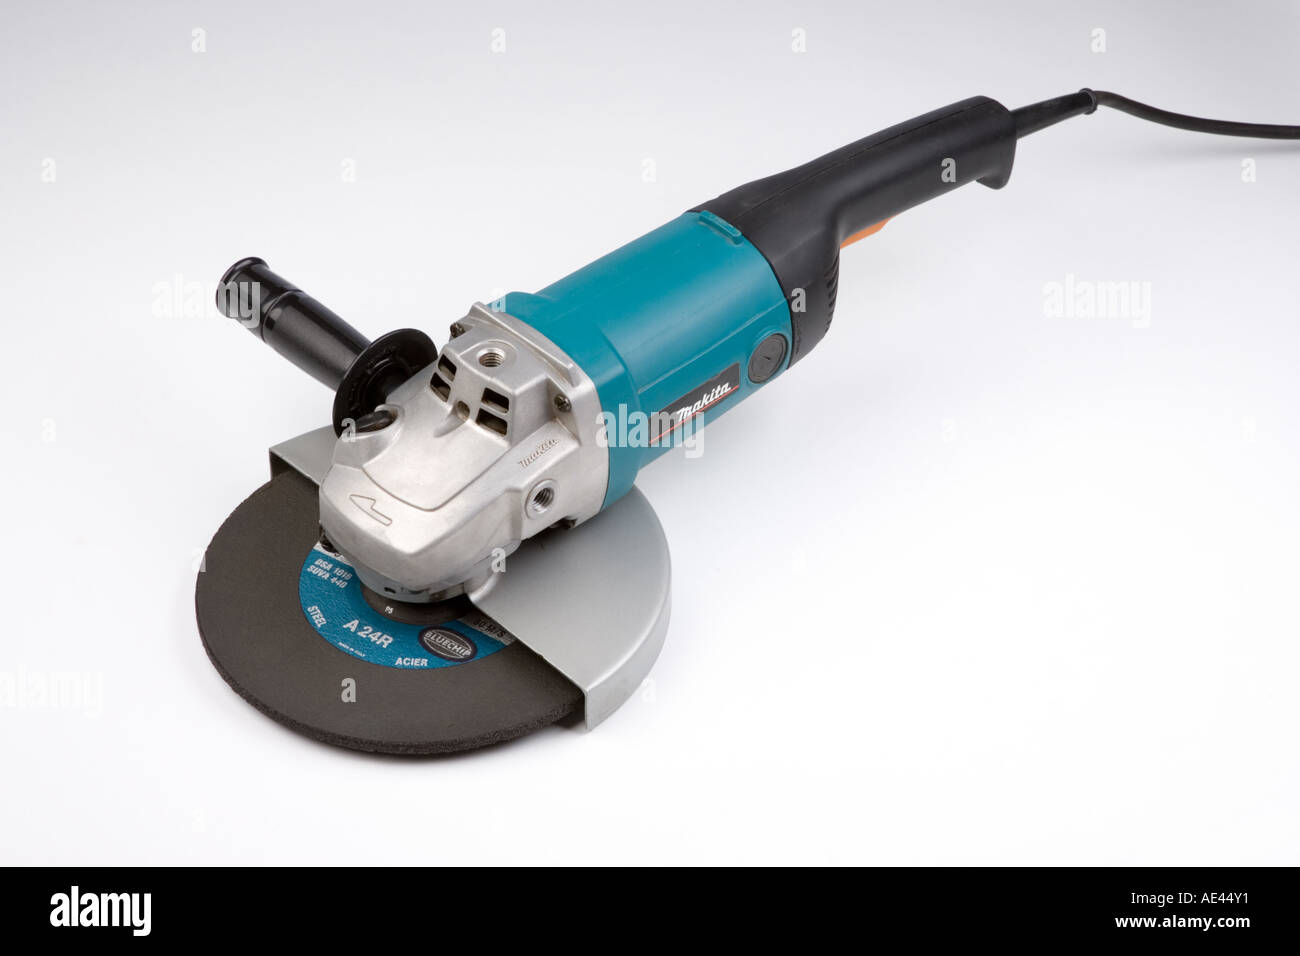 an electric grinder with 9 inch  cutting wheel - Stock Image